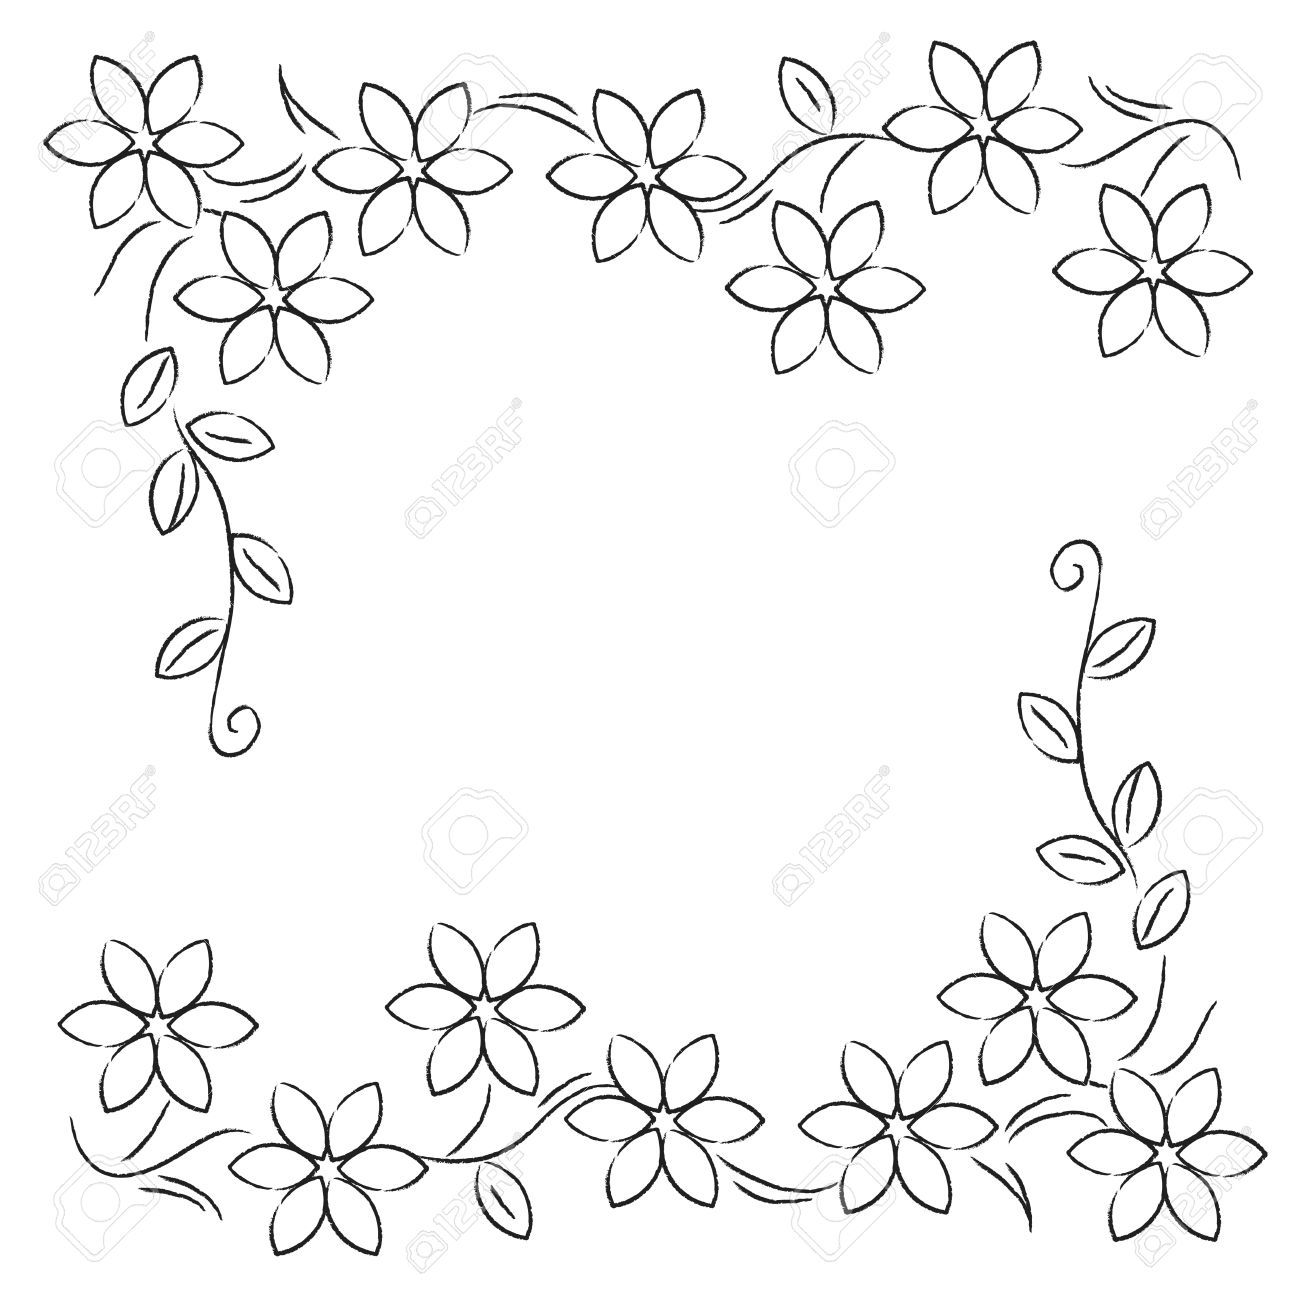 Line Drawing Flower Borders : Flower border line google search stationary to color